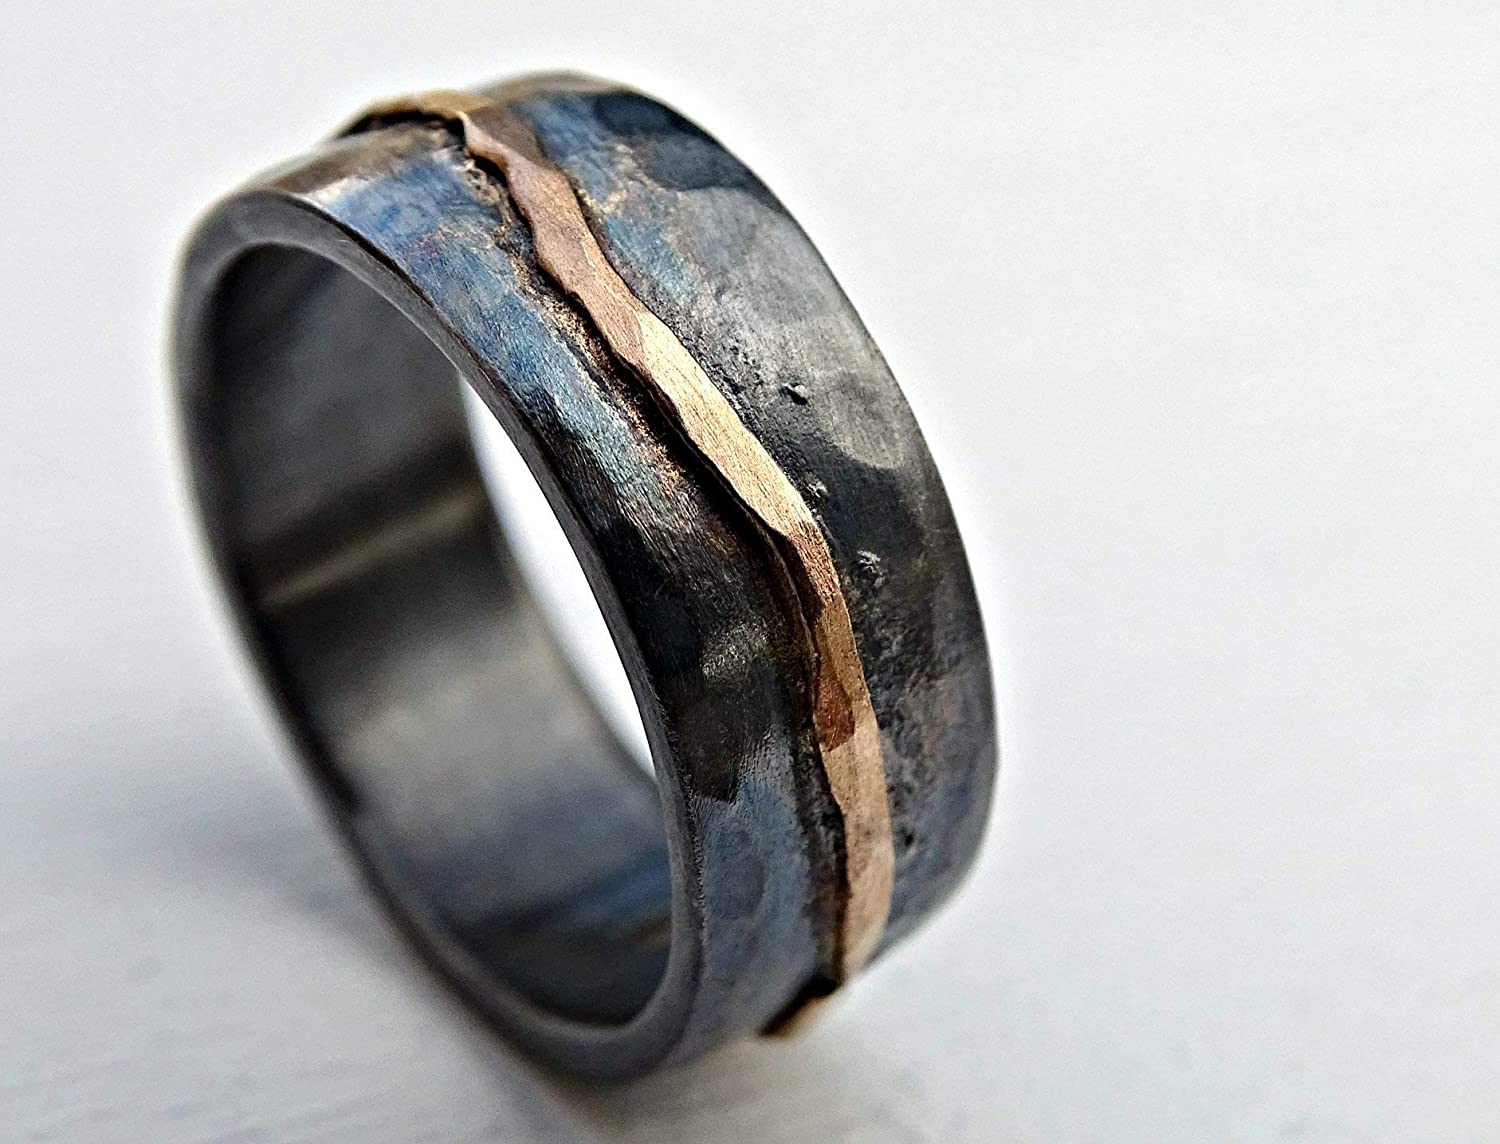 It is a photo of hammered gold wedding band black silver, man wedding band, organic wave ring gold, viking wedding ring forged, celtic promise band, cool mens ring